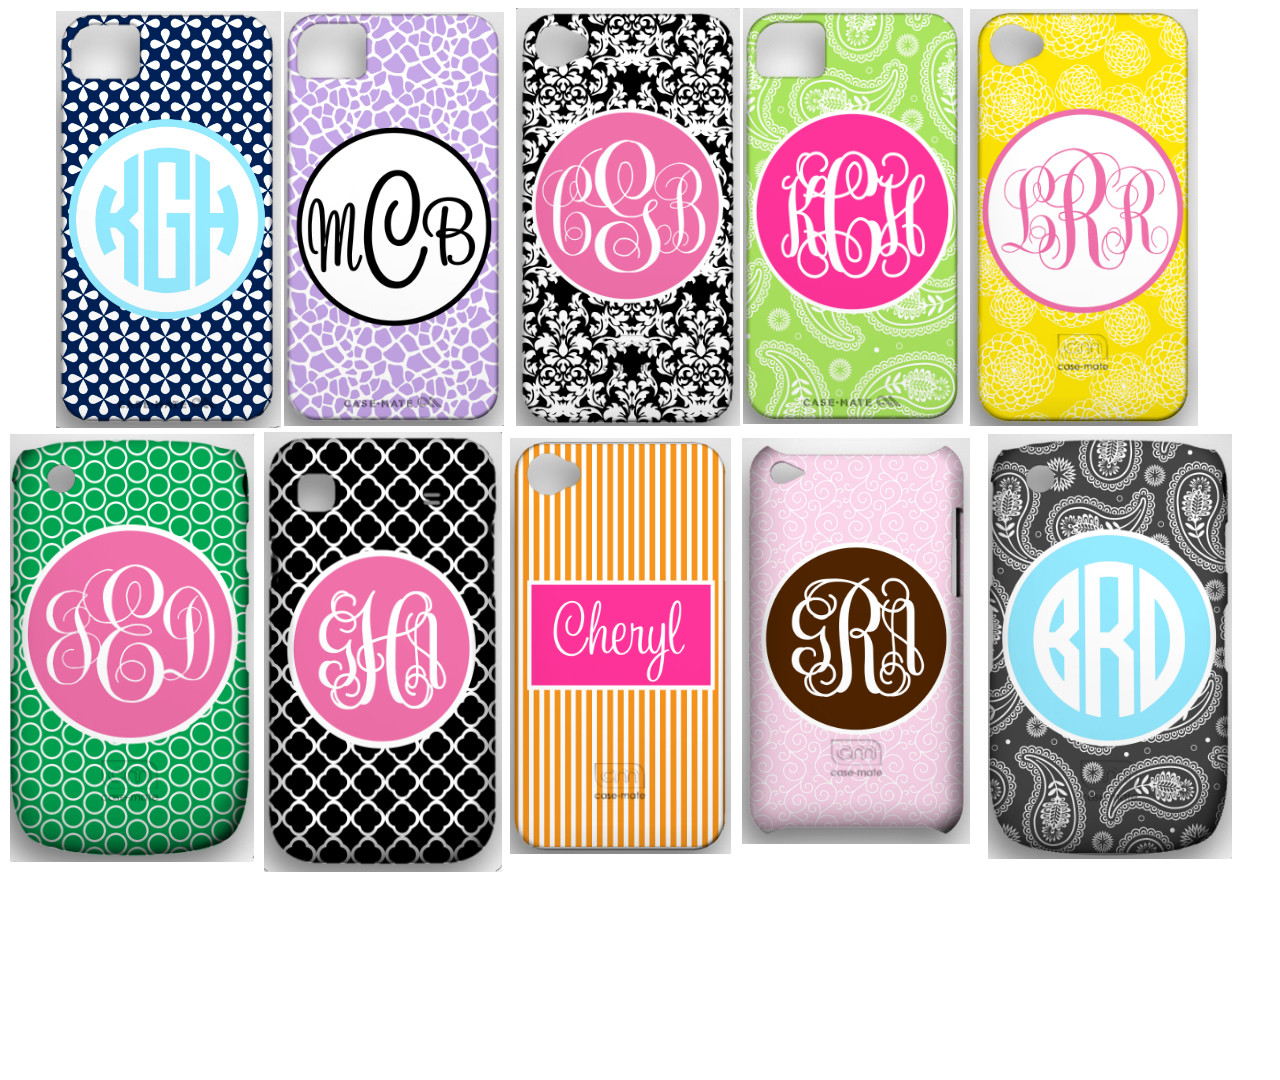 Personalized iphone, blackberry Covers ~ Monogrammed Cell Phone Case TinyTulip.com We're All